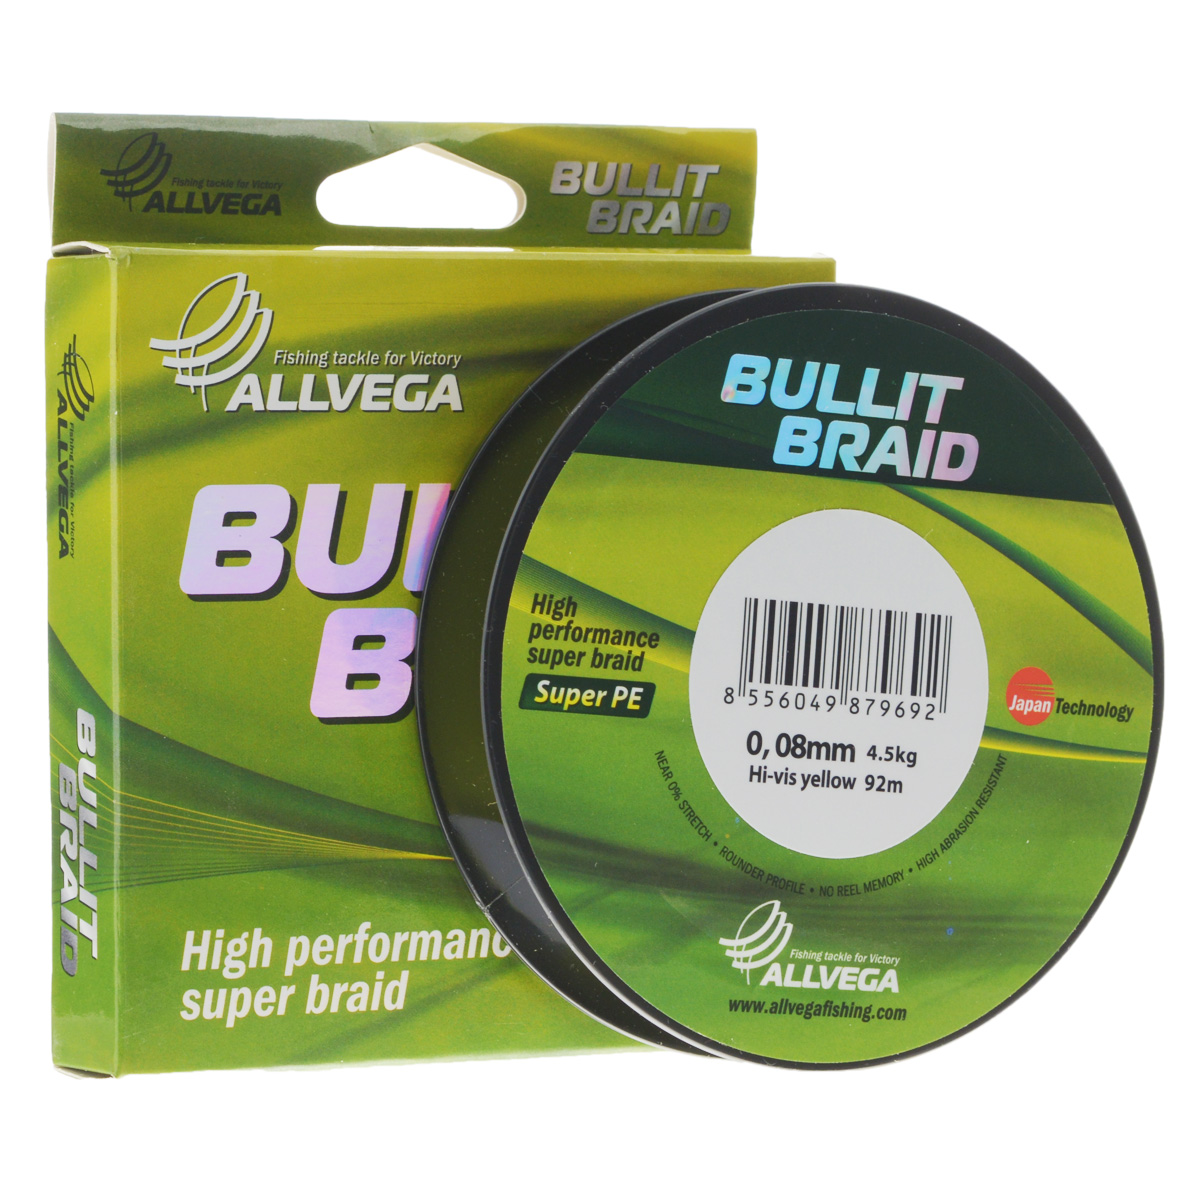 Леска плетеная Allvega Bullit Braid, цвет: ярко-желтая, 92 м, 0,08 мм, 4,5 кг